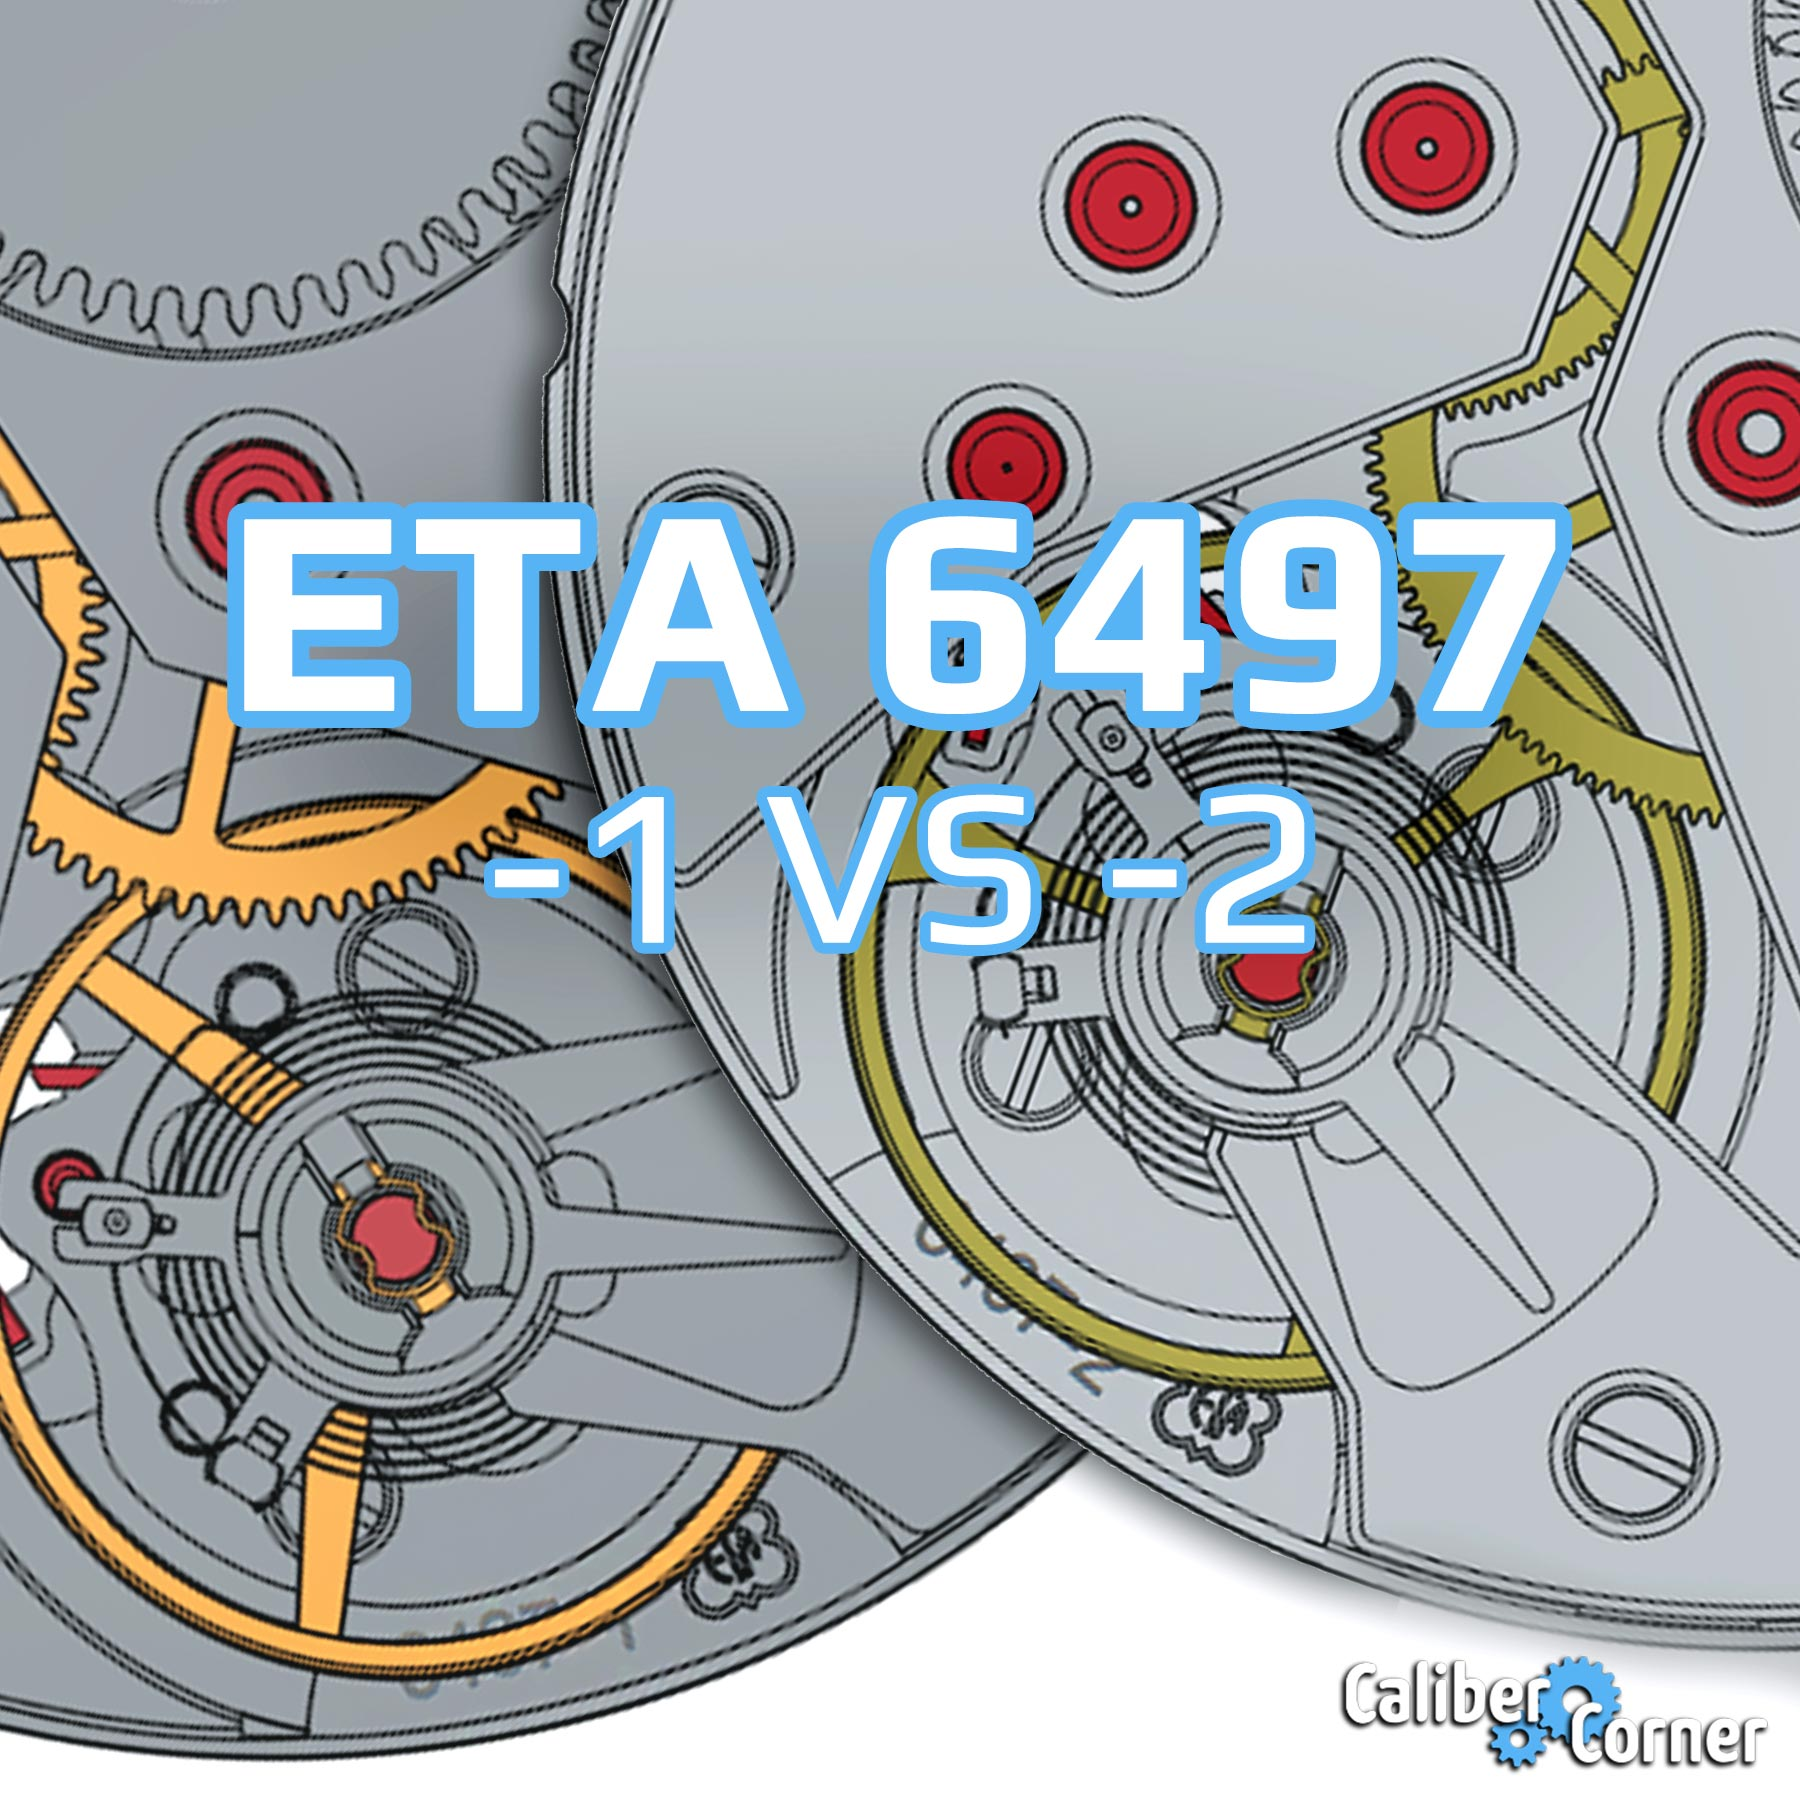 Eta Unitas 6497 1 2 Comparison Caliber Spec